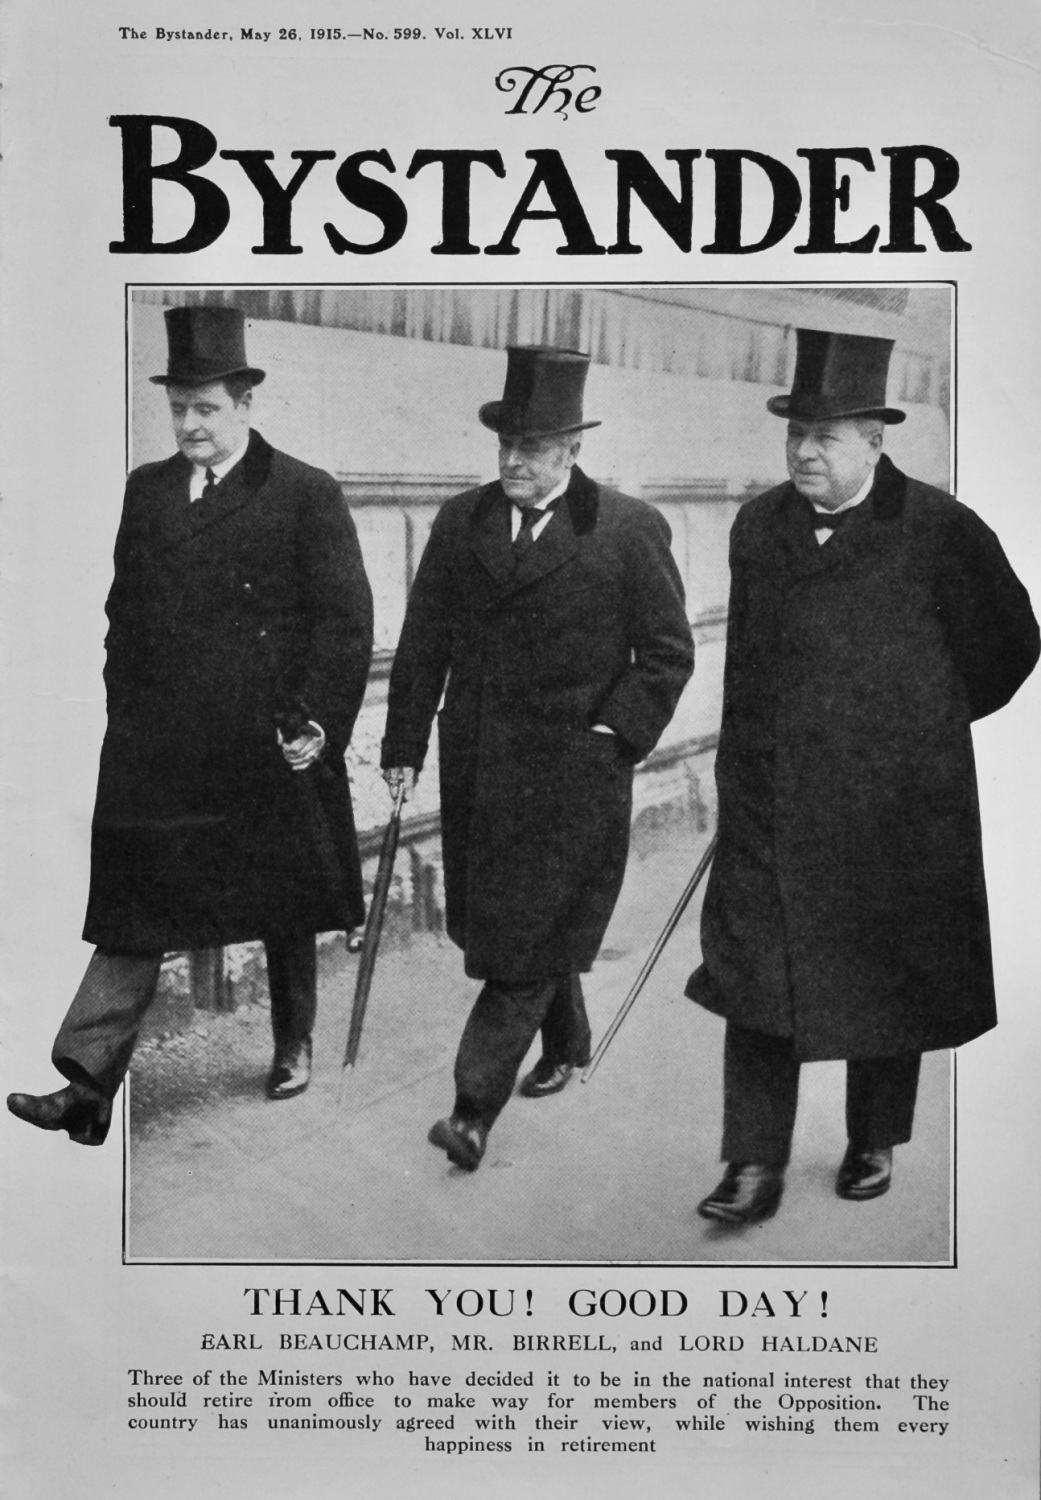 The Bystander May 26th 1915.